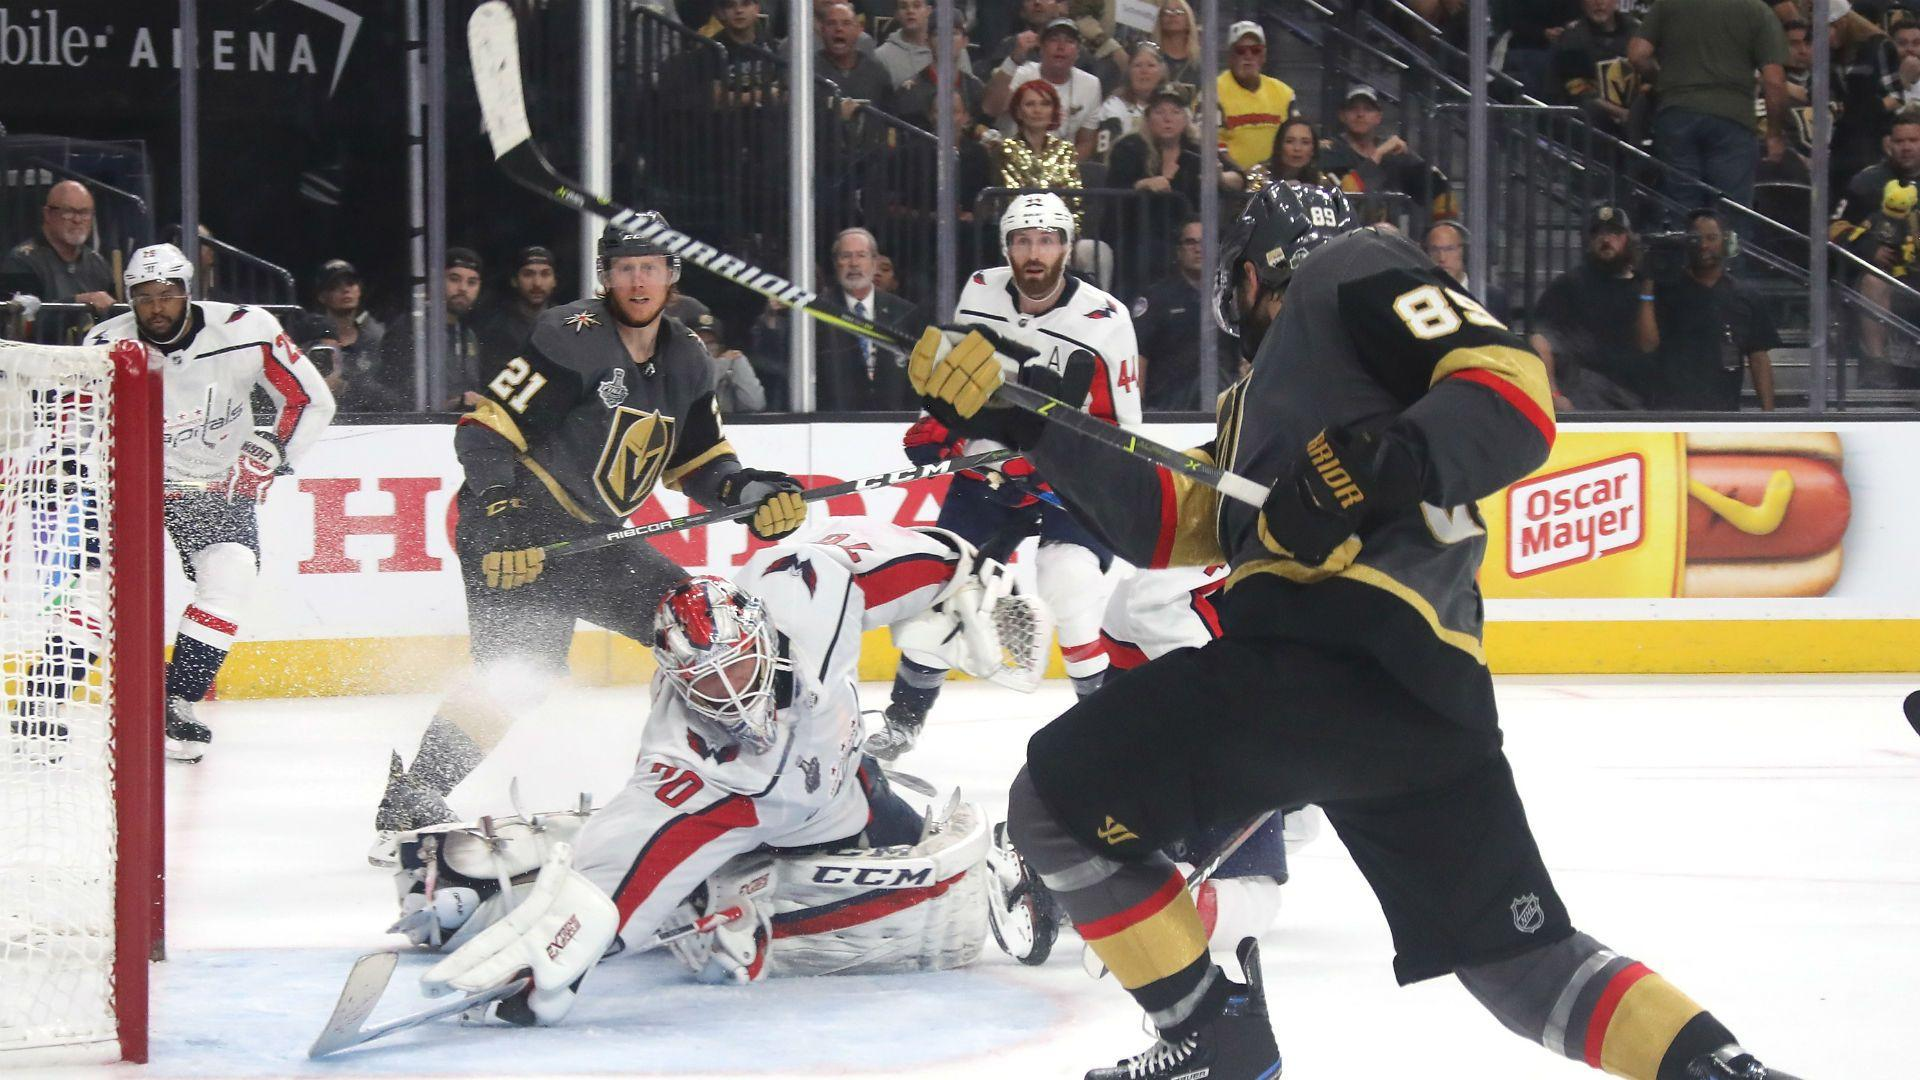 Stanley Cup Final 2018: Capitals' Braden Holtby makes ridiculous